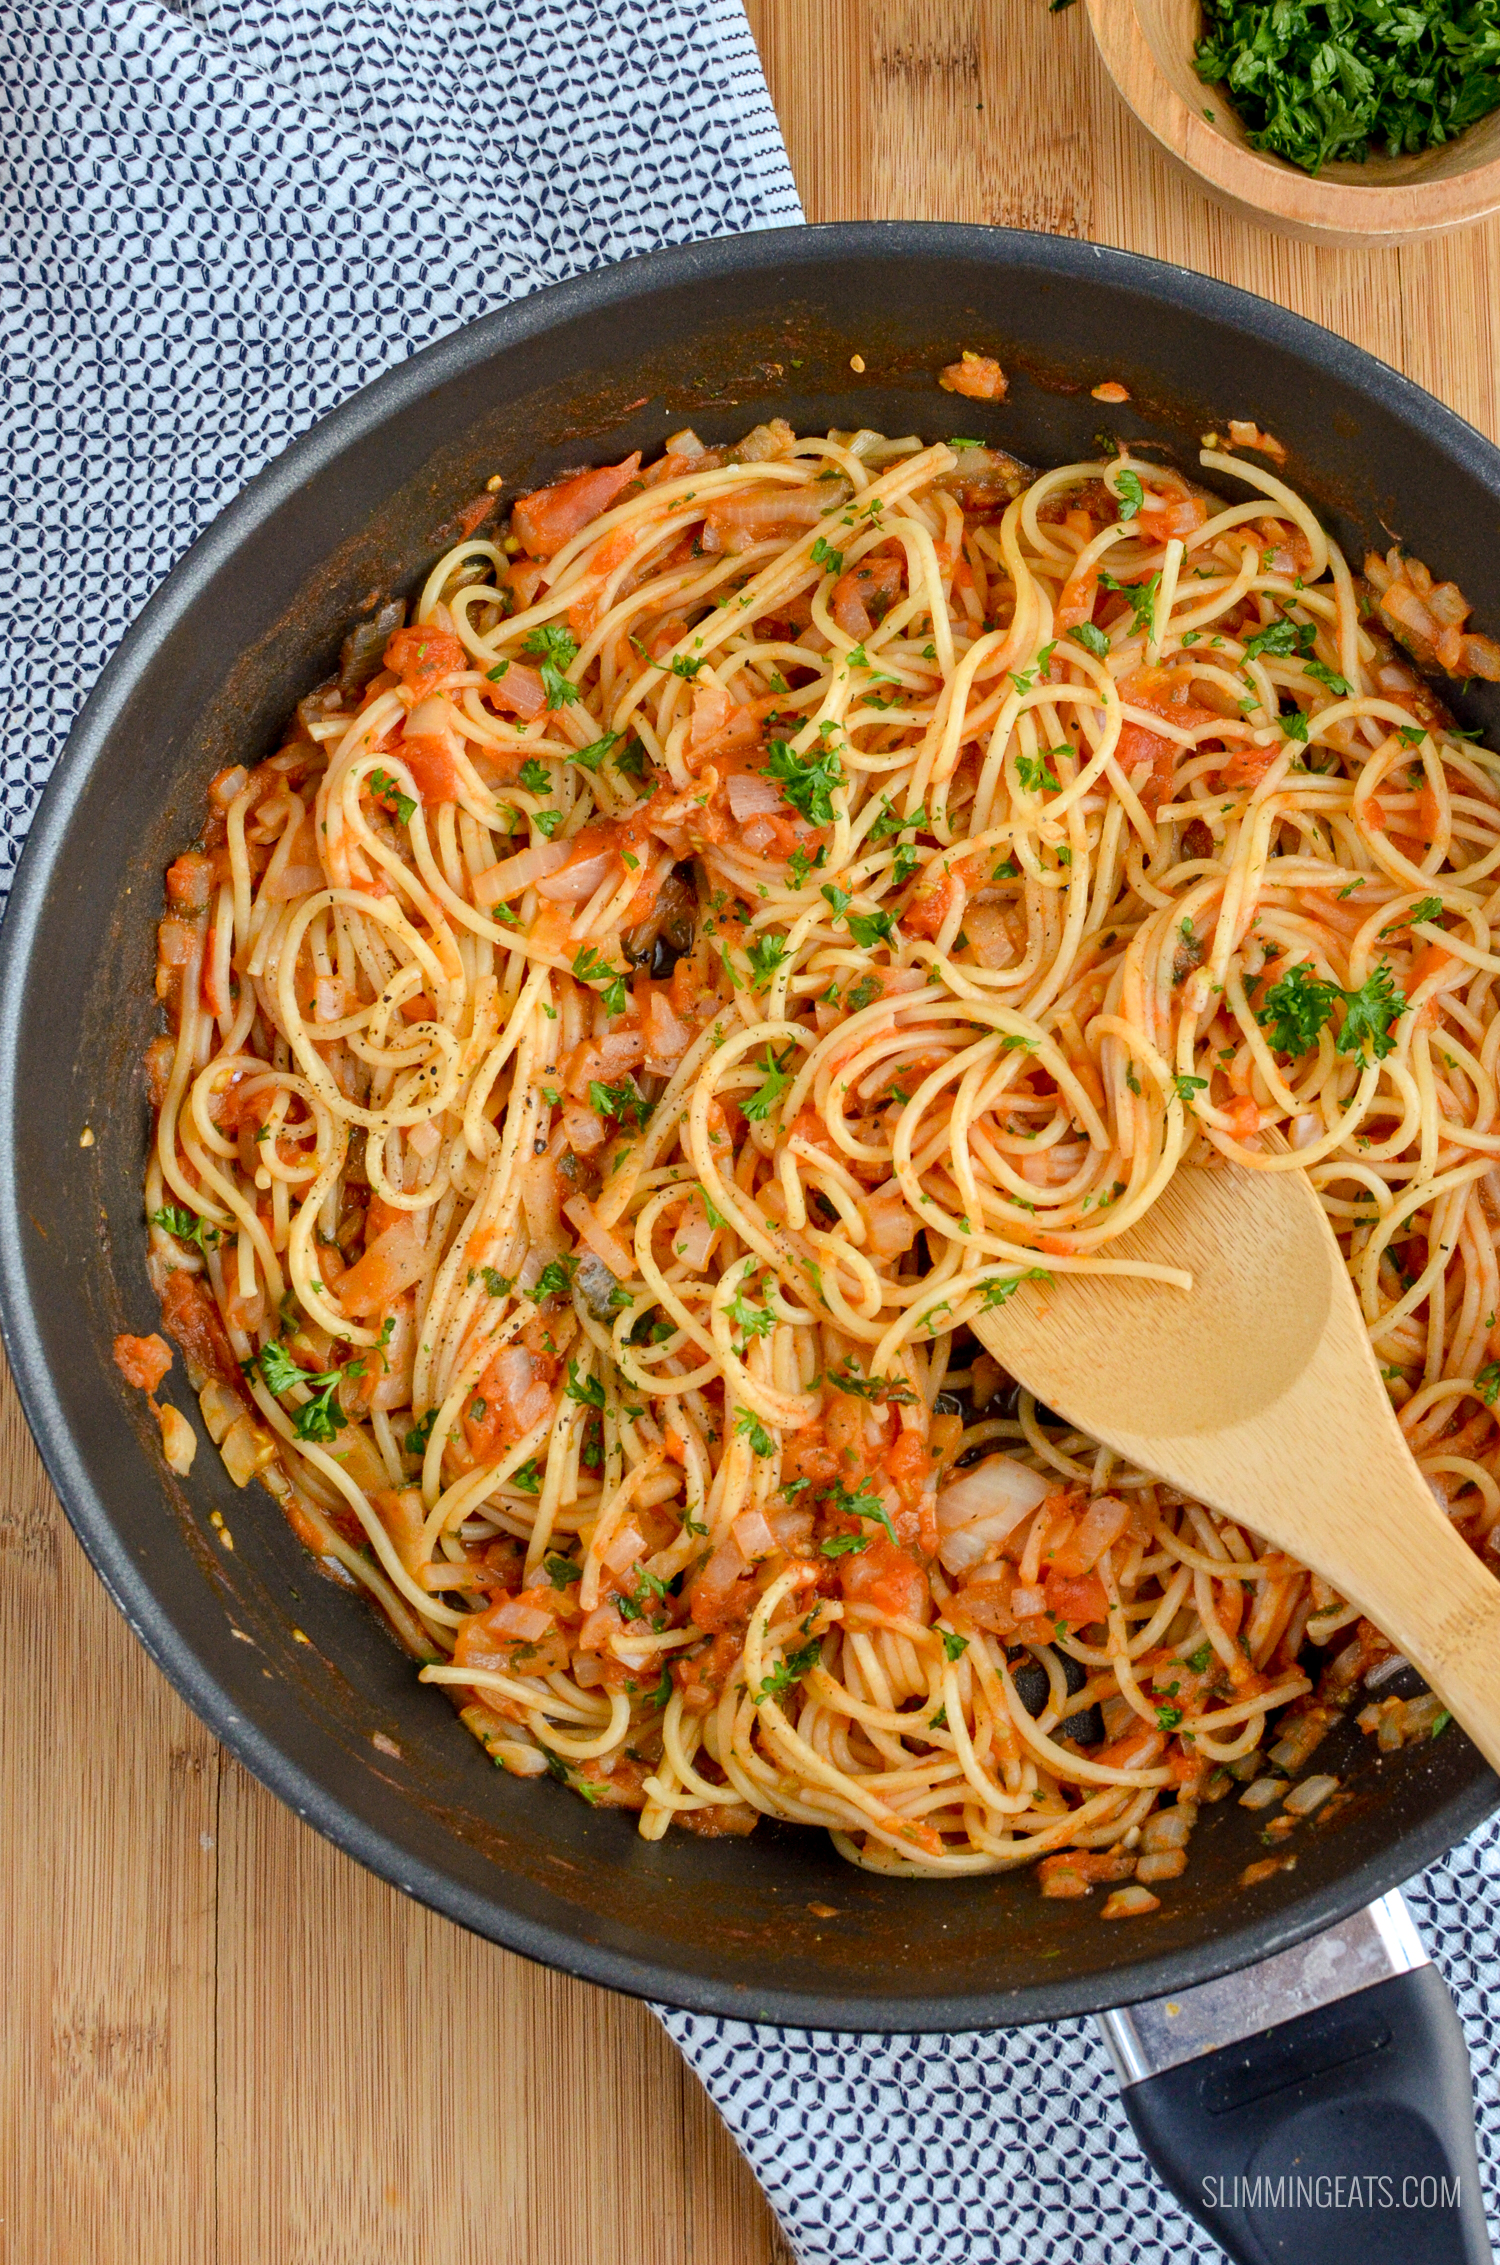 Syn Free Tomato and Garlic Pasta - simple and fresh ingredients for a delicious meal in less than 30 minutes - gluten free, dairy free, vegan, Slimming World and Weight Watchers friendly   www.slimmingeats.com